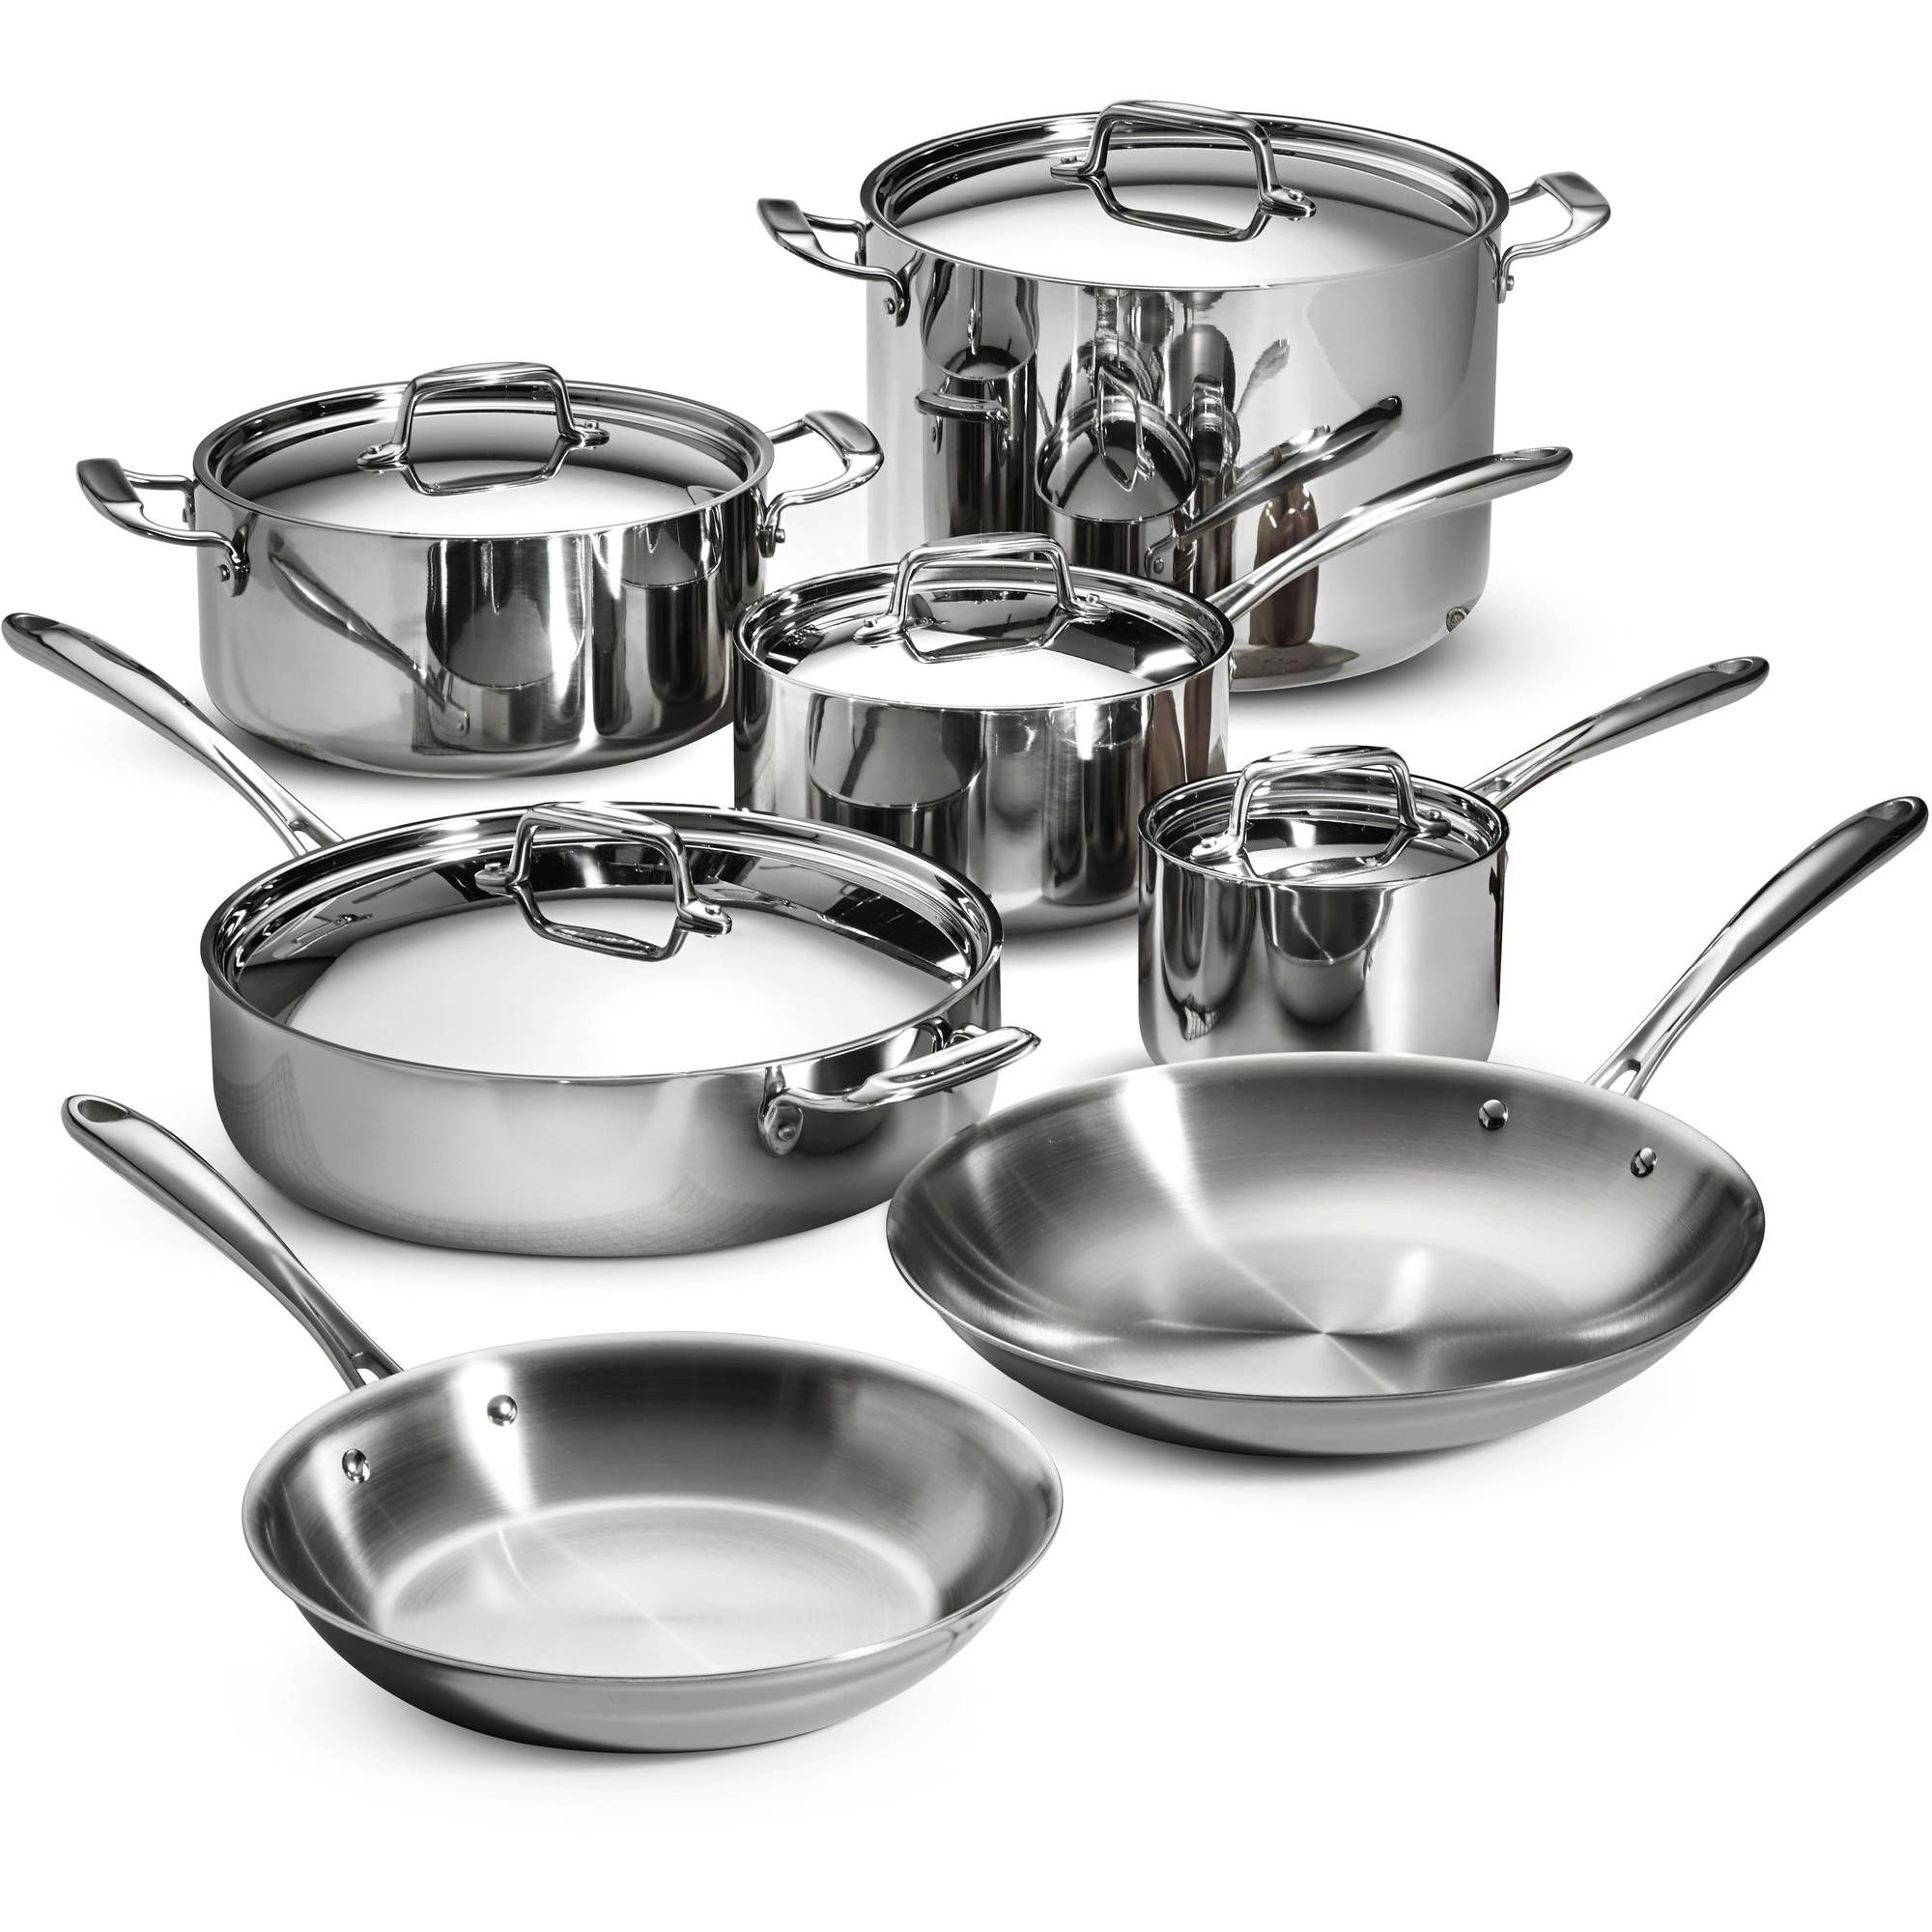 Home Cookware Set Cookware Set Stainless Steel Stainless Steel